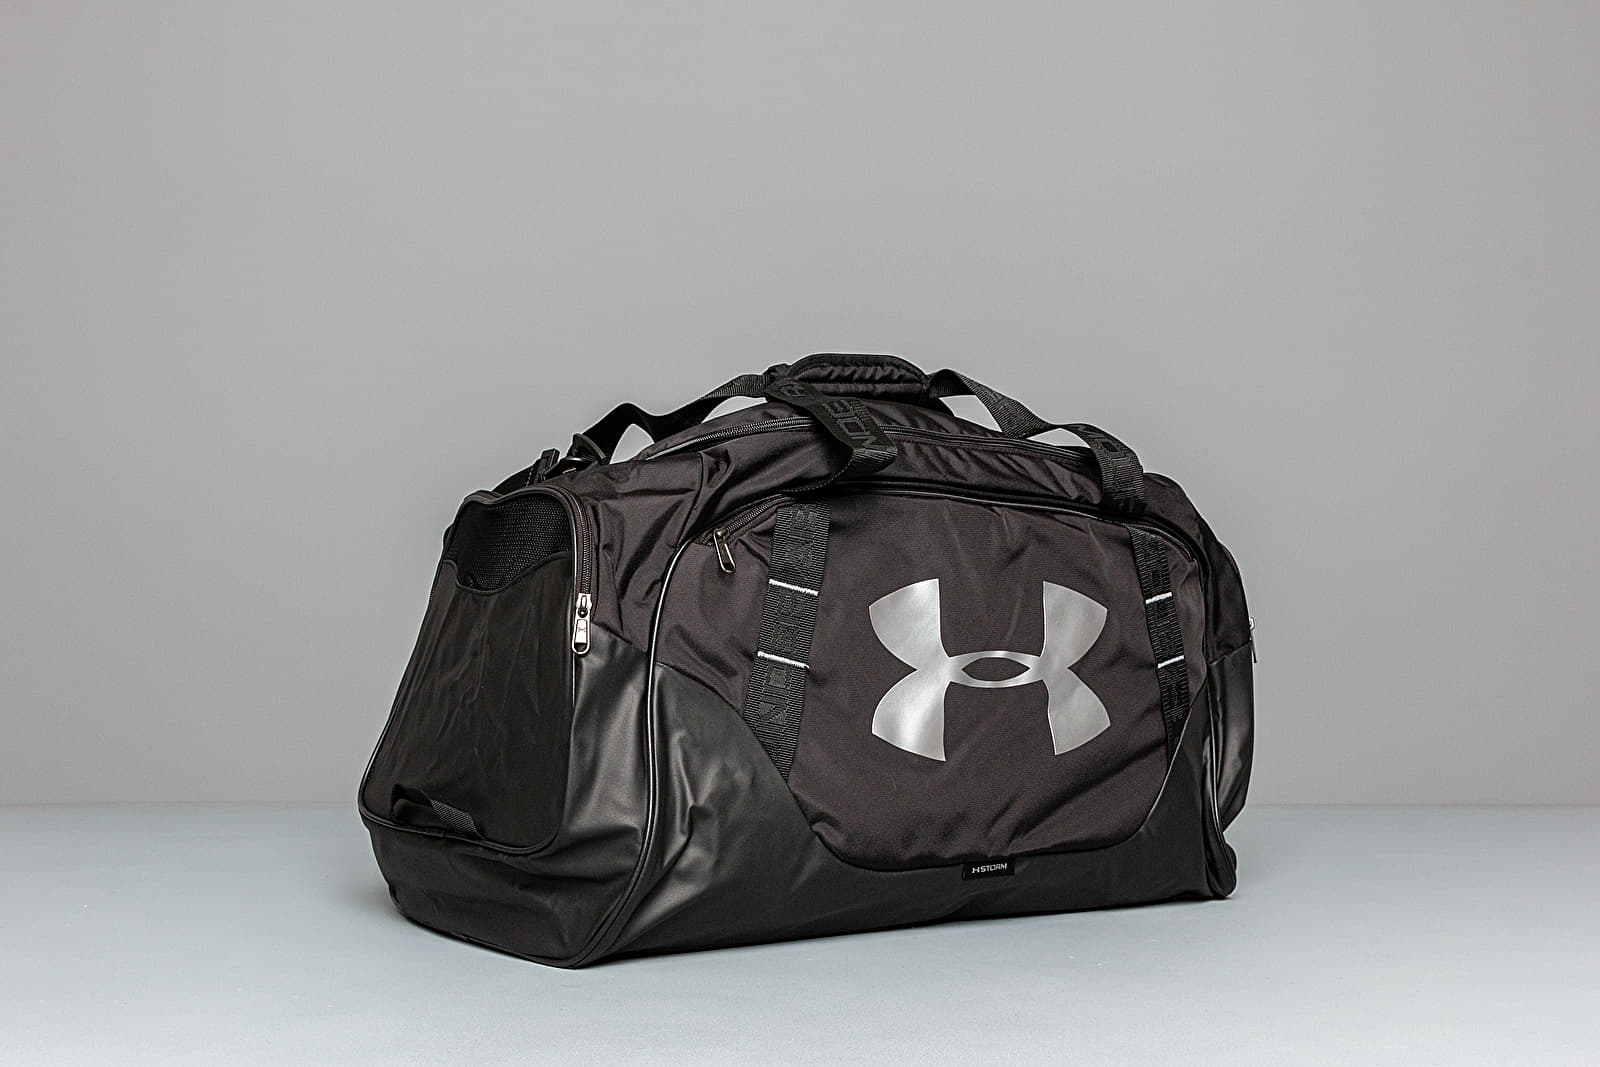 Under Armour Undeniable Large Duffle 3.0